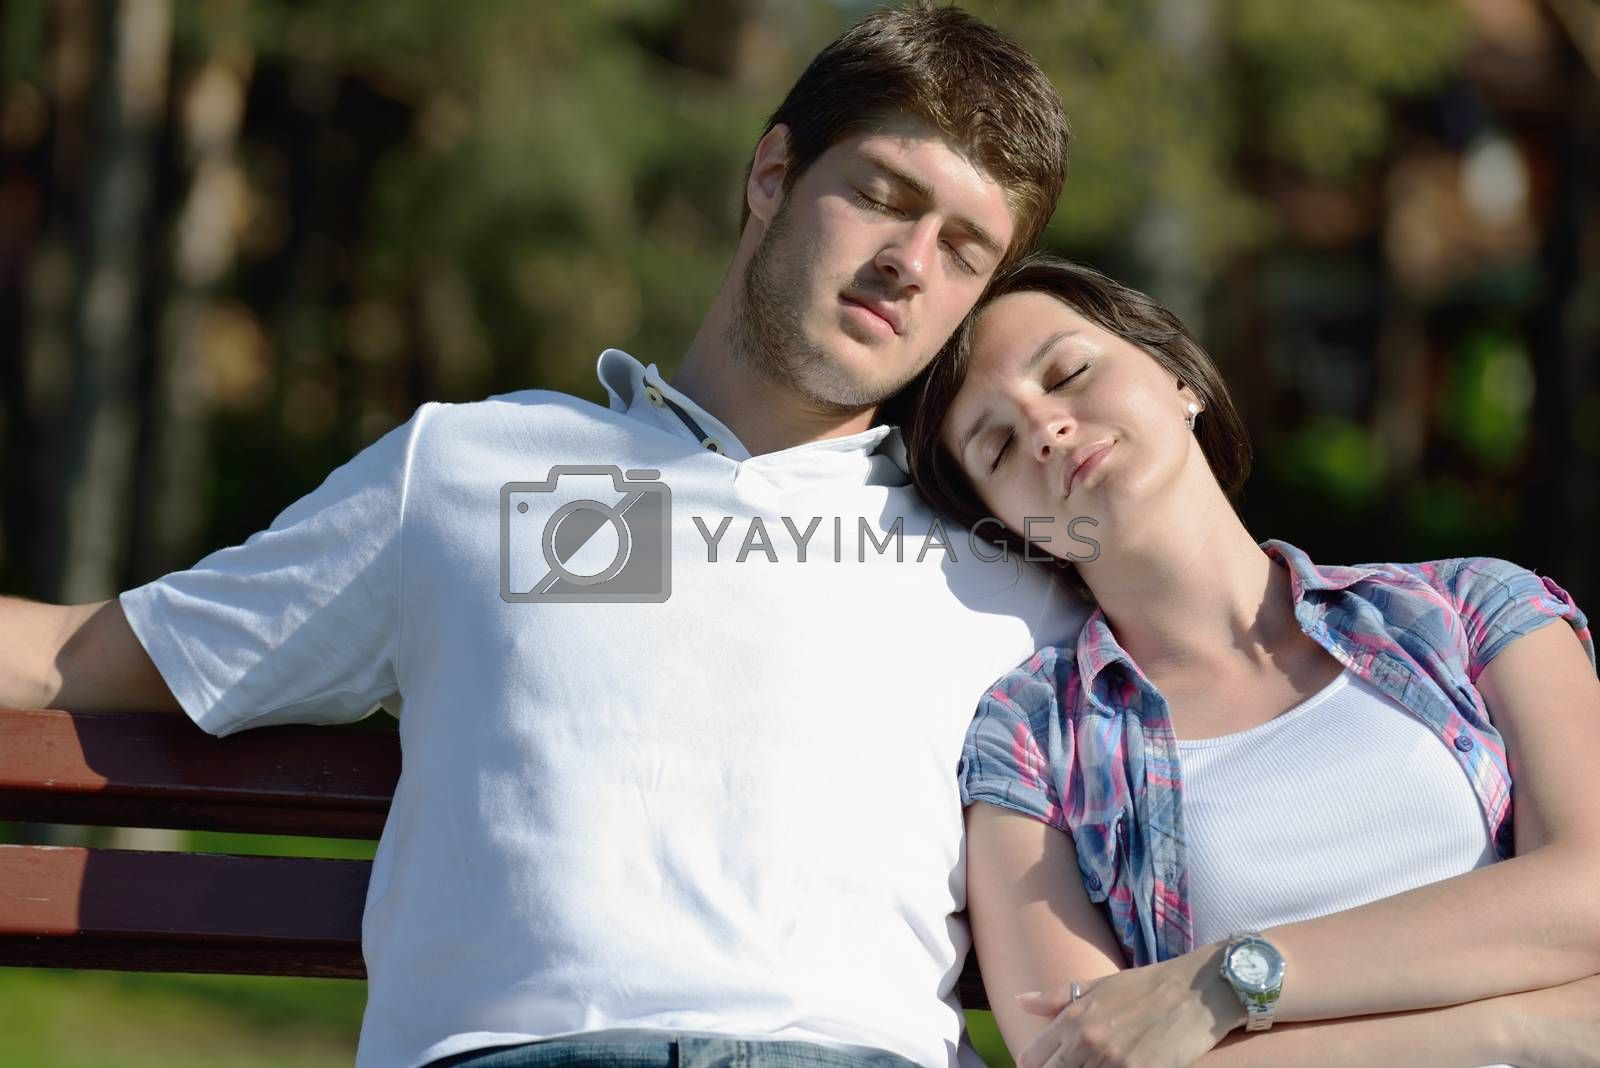 Portrait of romantic young couple in love  smiling together outdoor in nature with blue sky in background